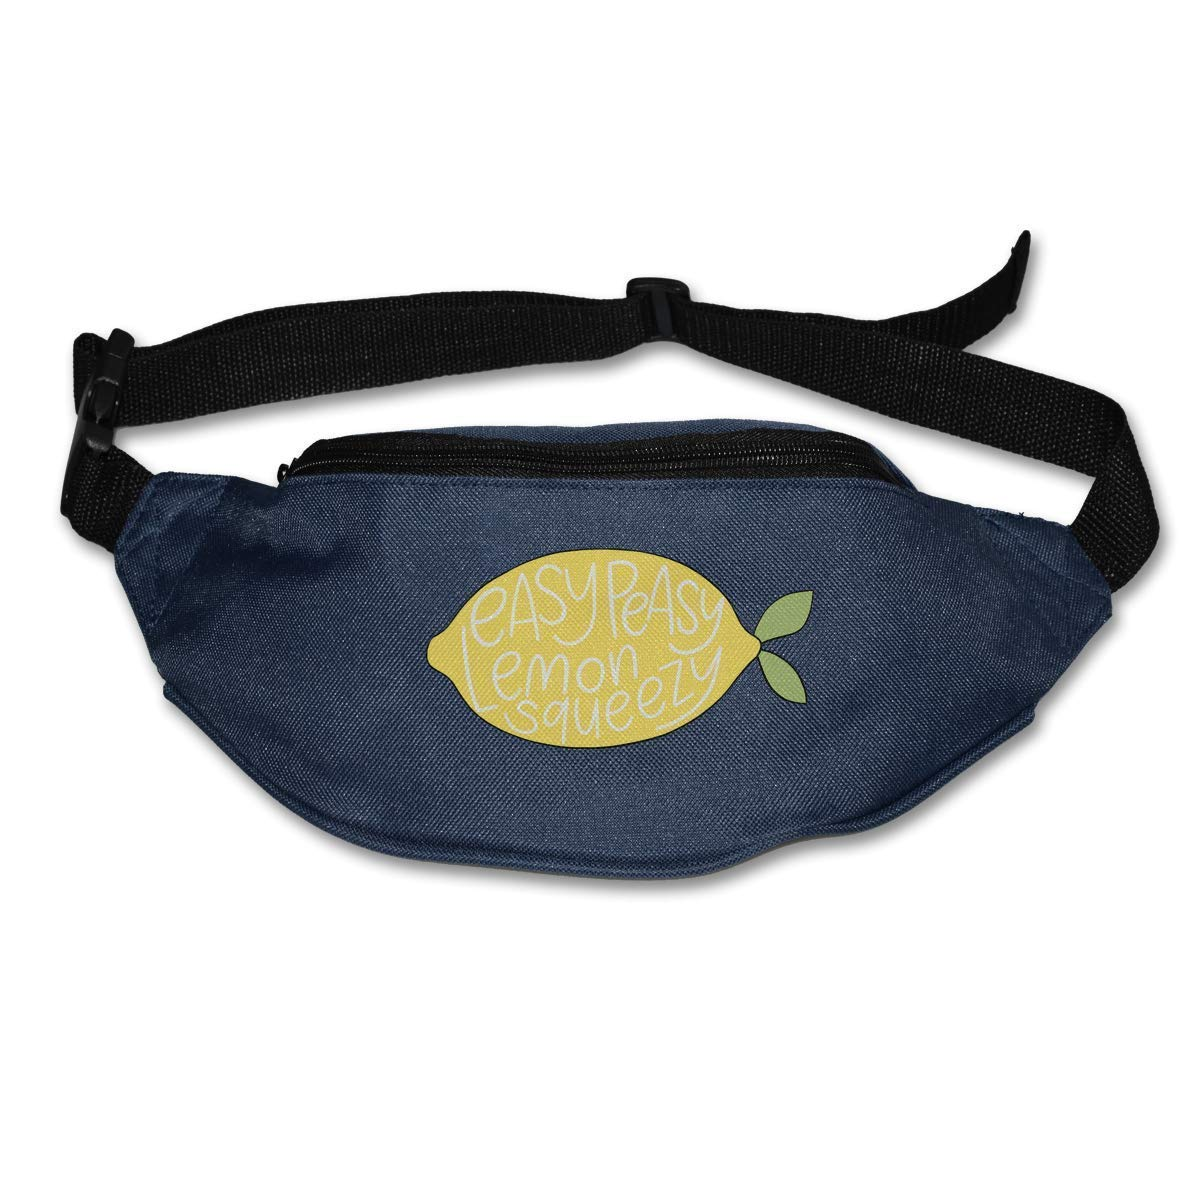 xjh558798 Easy Peasy Lemon Squeezy Running orts Waist Bag Zipper Pockets Water